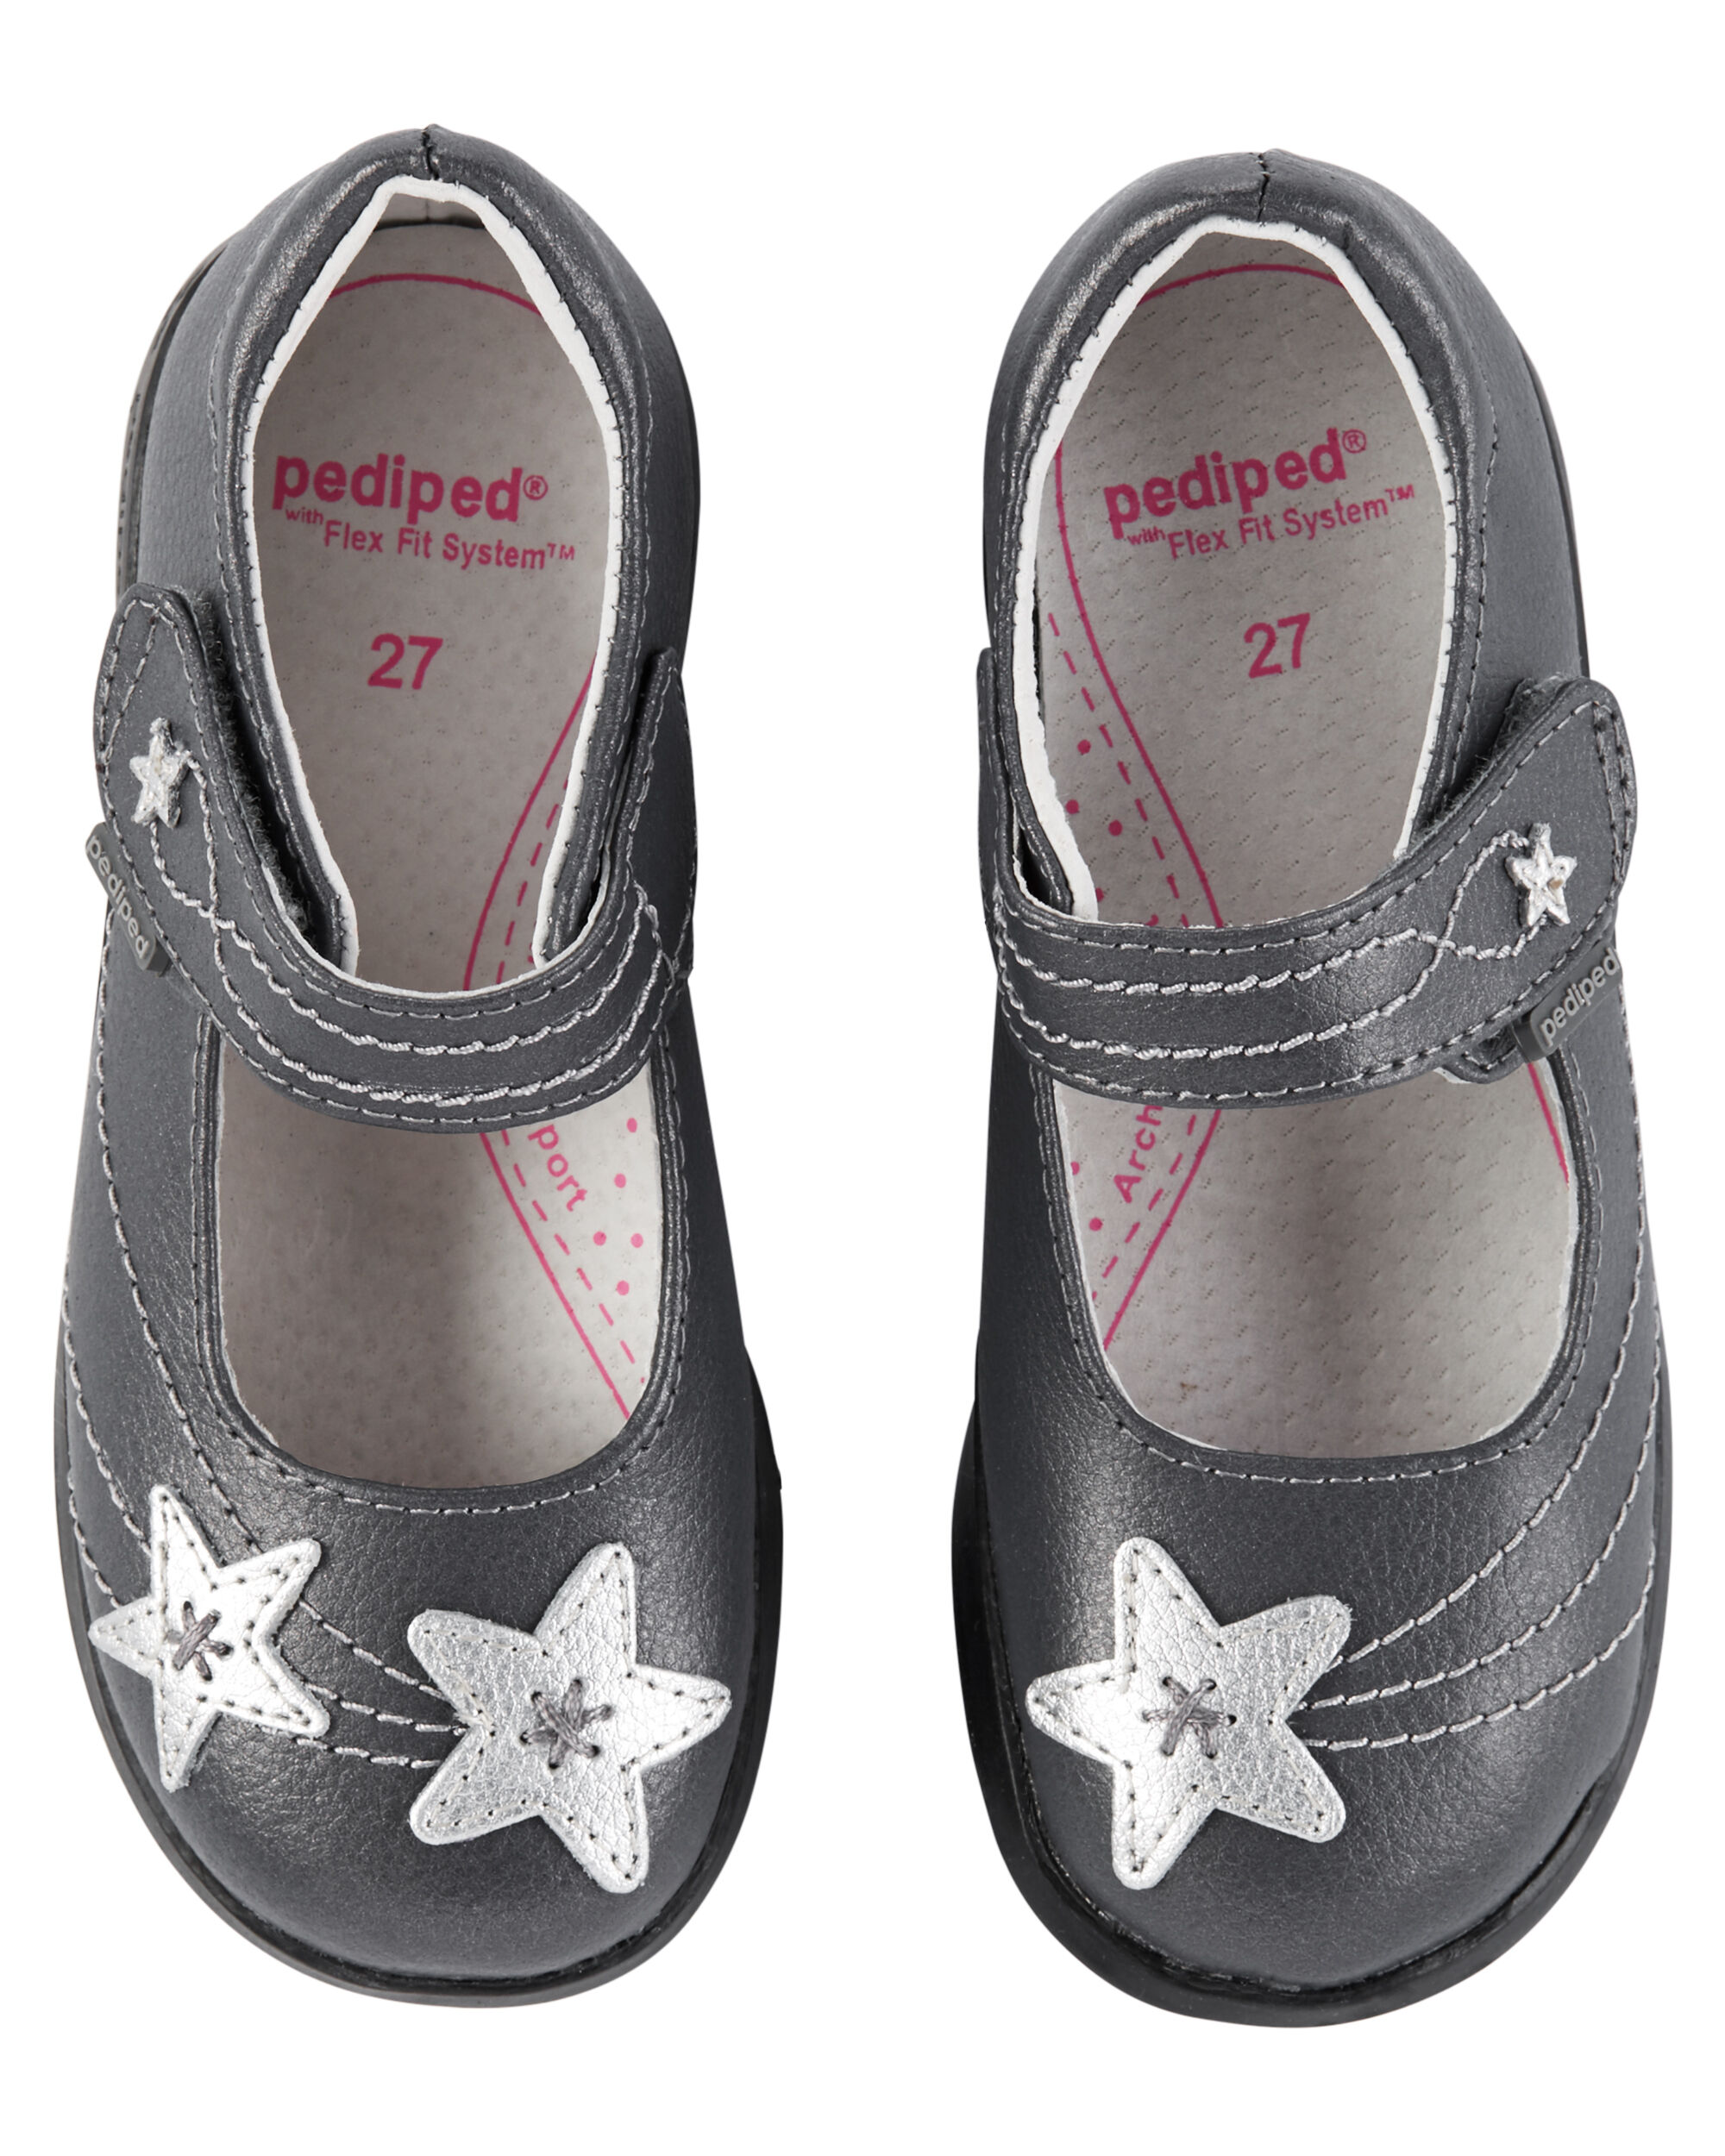 Pediped Flex Starlite Pewter